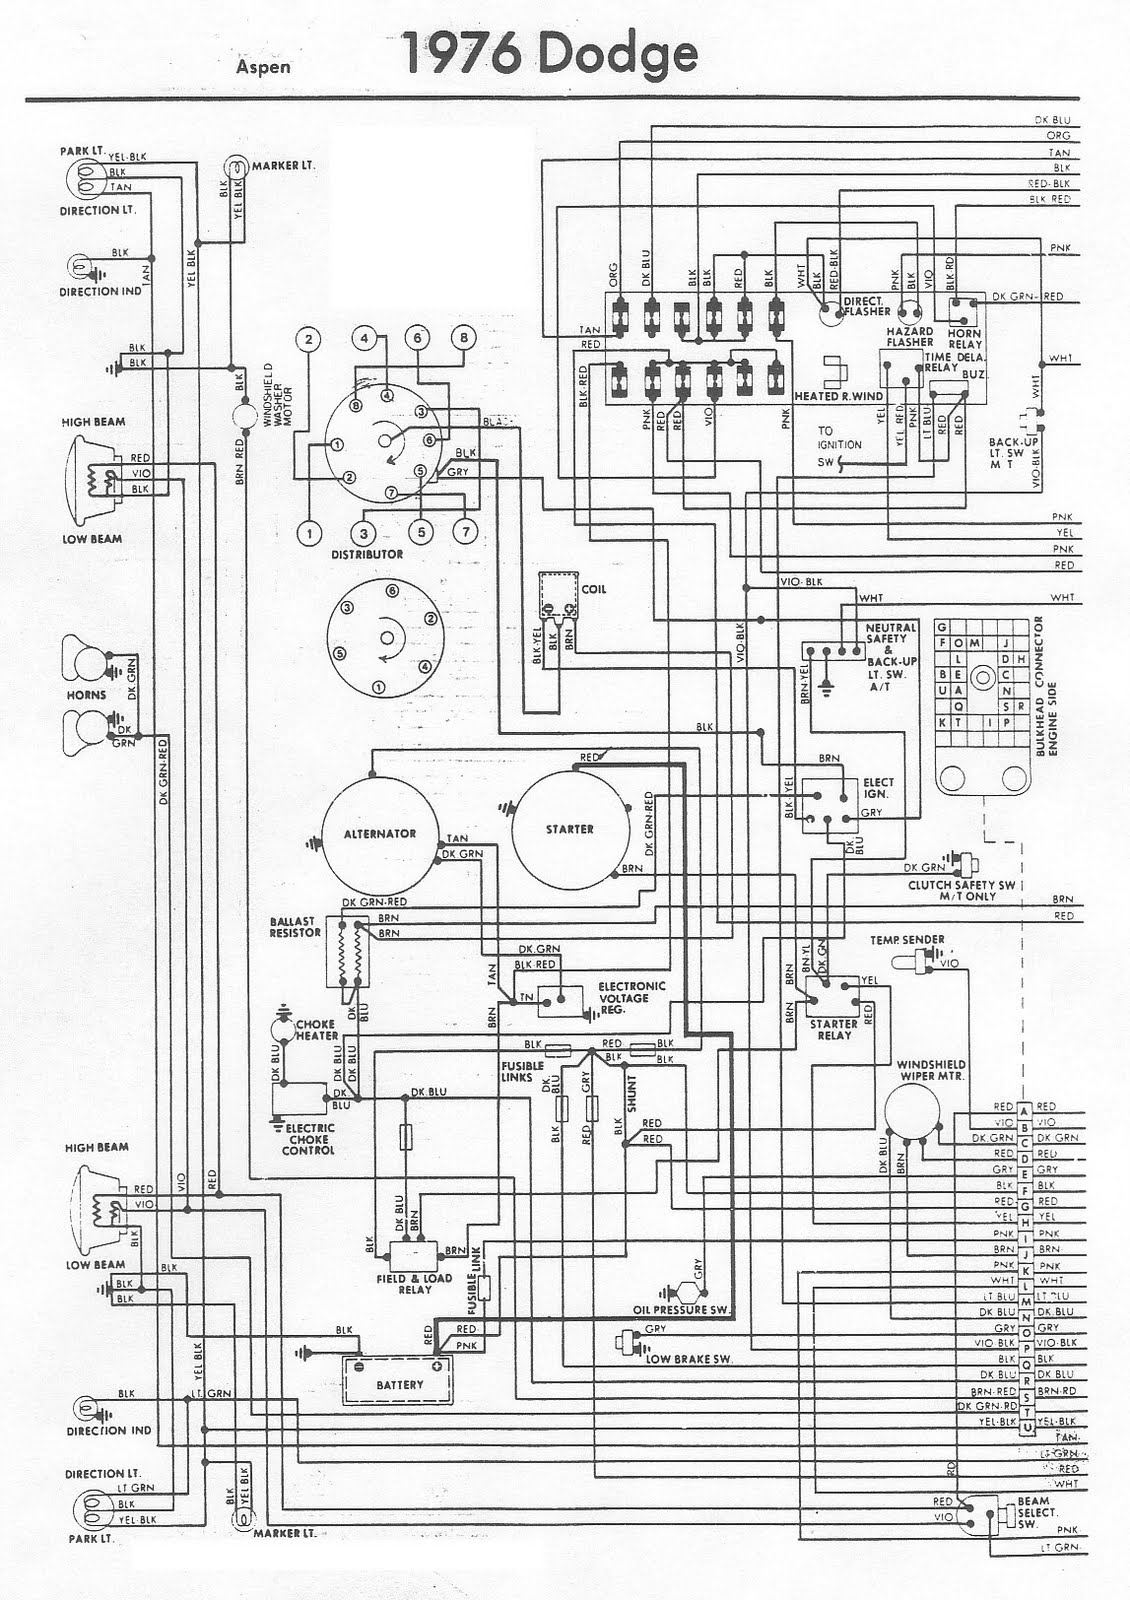 volkswagen and audi wiring diagram system wiring library rh 12 affordableblinds org uk